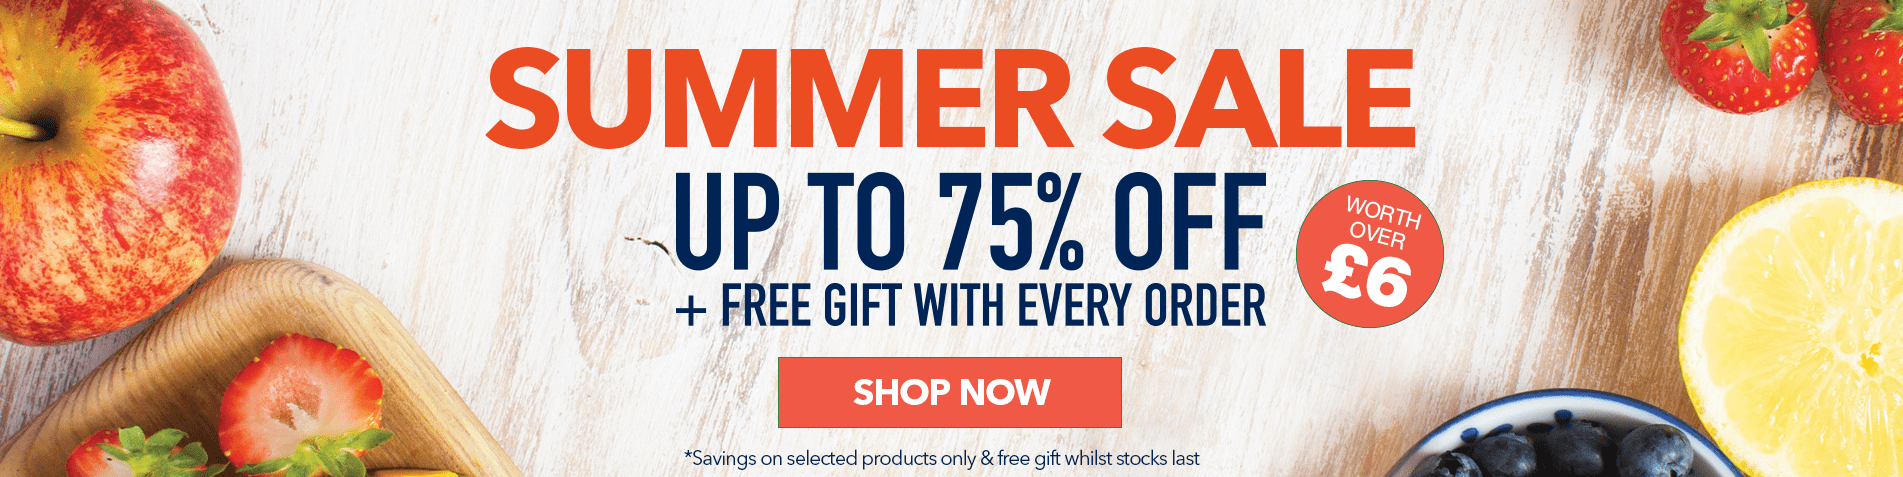 Summer Sale - up to 75% off